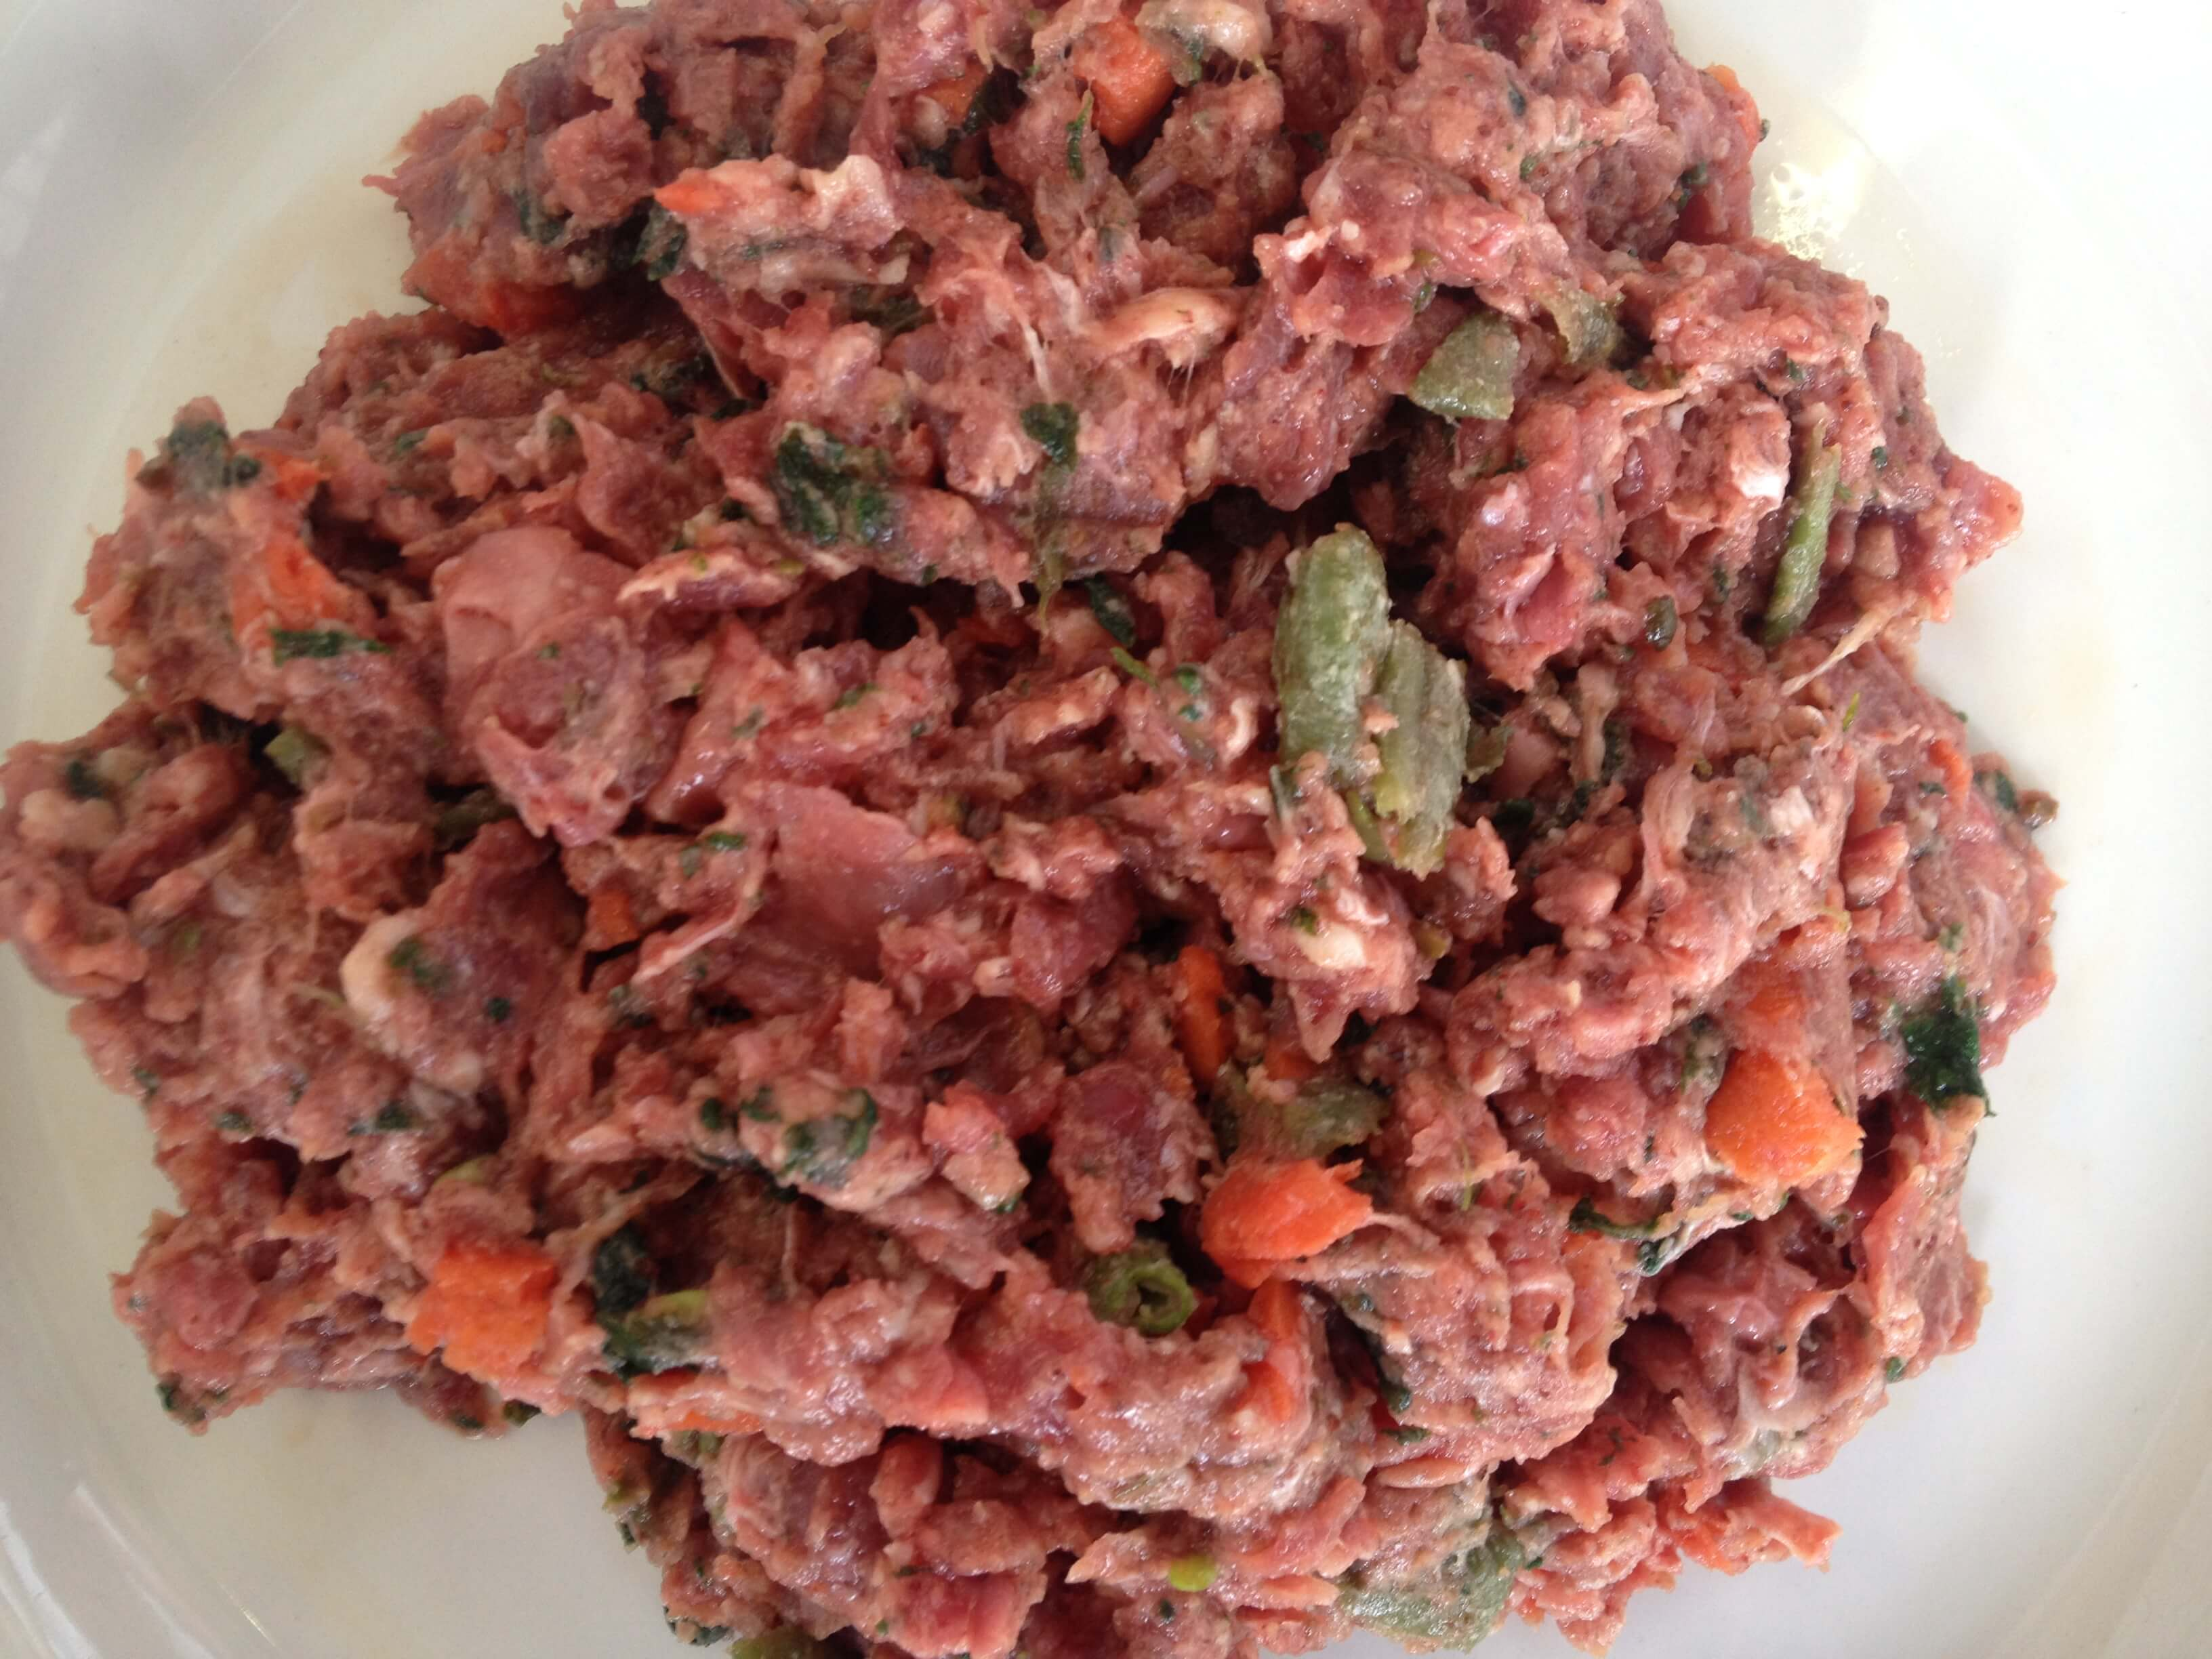 DIY raw diet for dogs slashes the cost of raw dog food